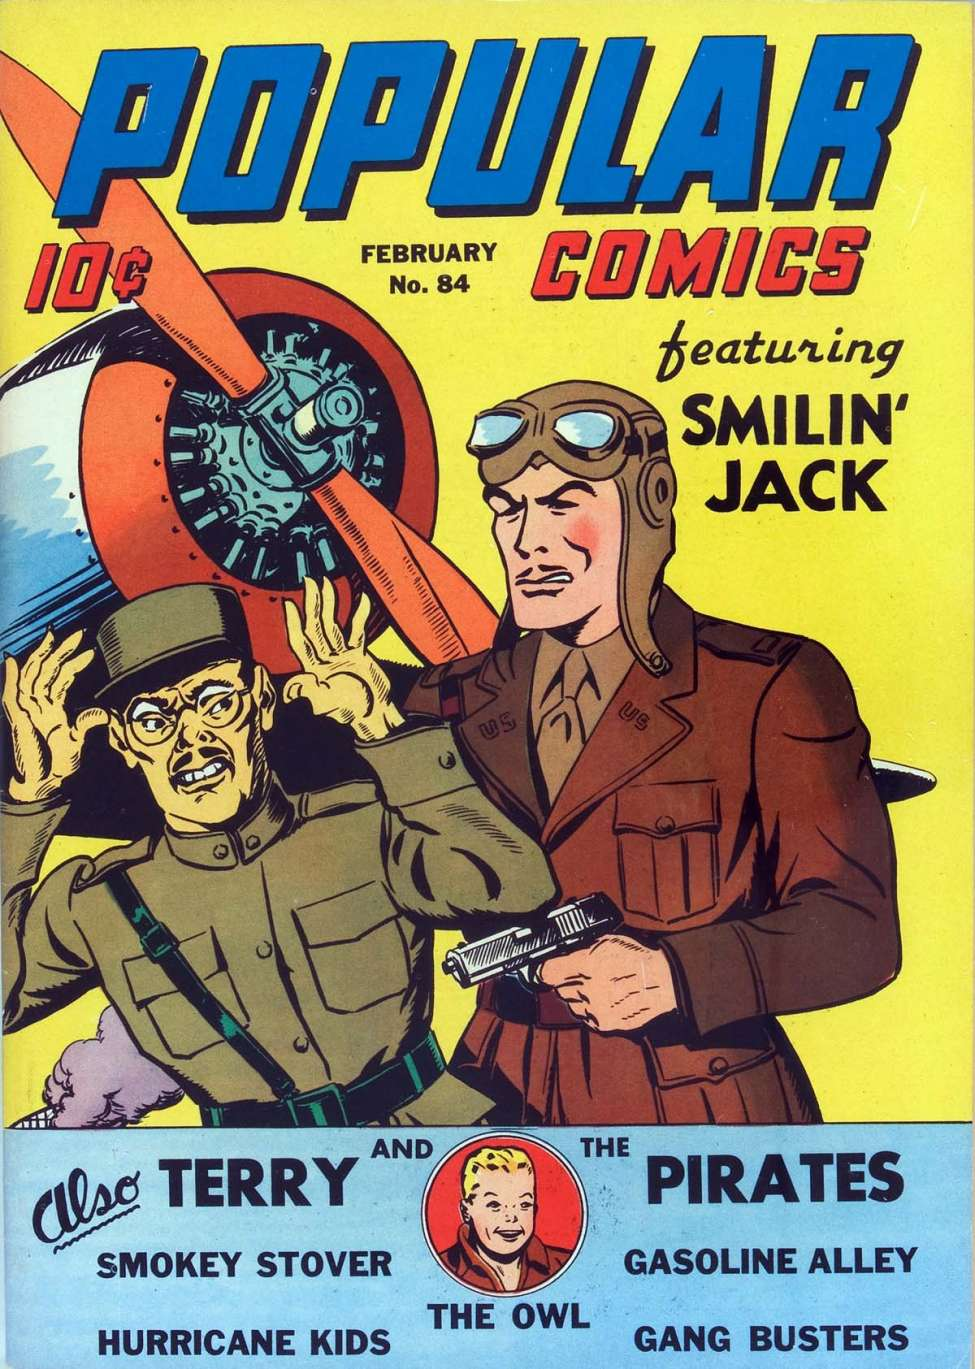 Comic Book Cover For Popular Comics #84